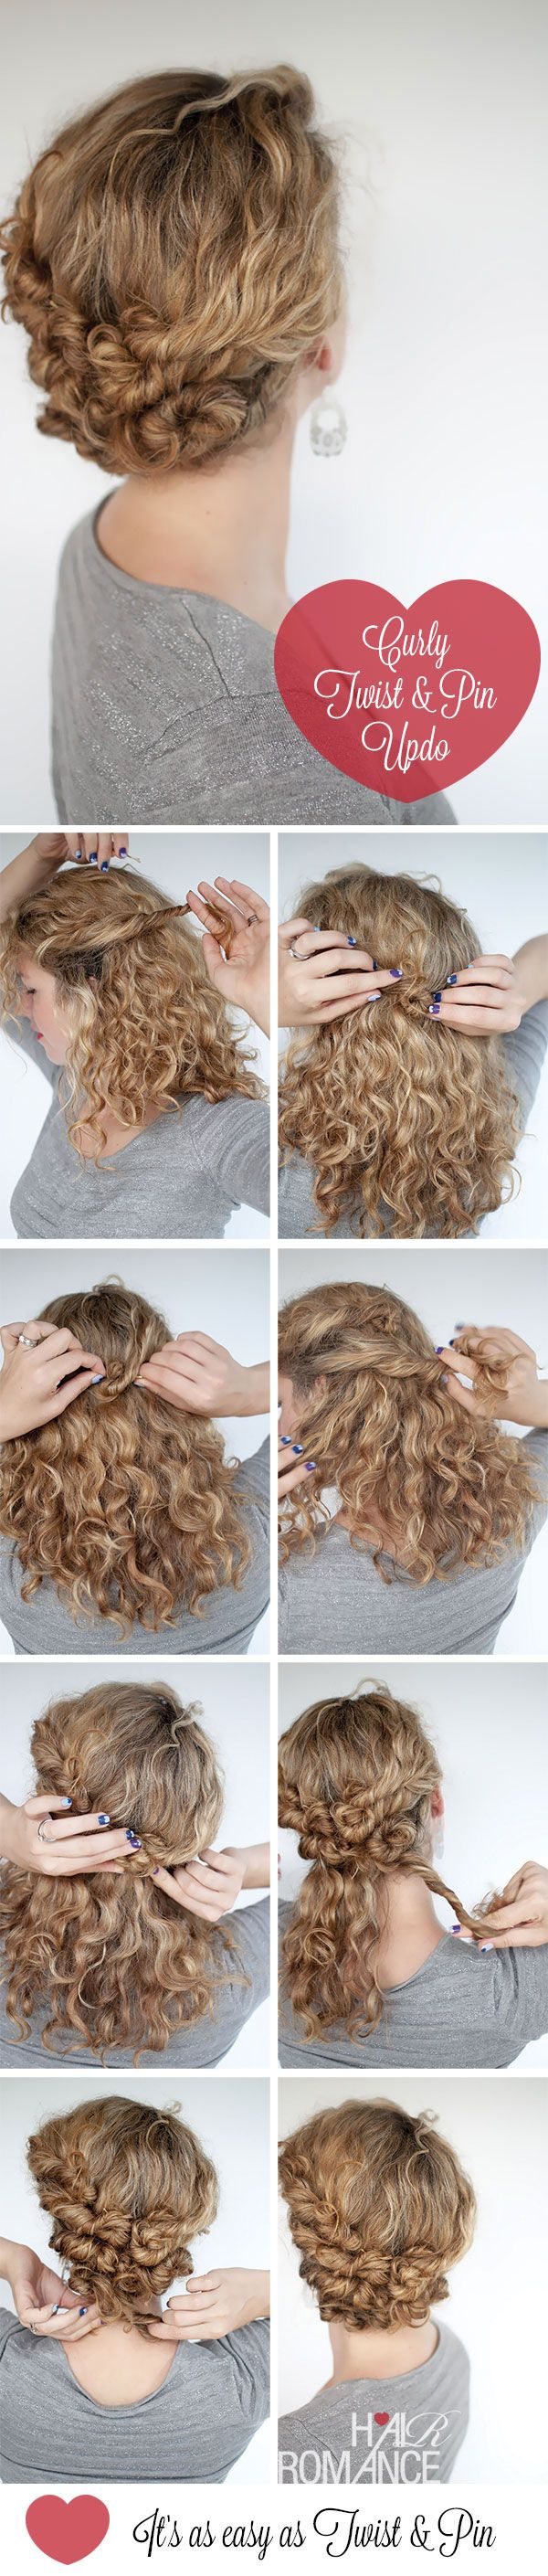 Hair Romance - curly Twist & Pin hairstyle tutorial for curly hair